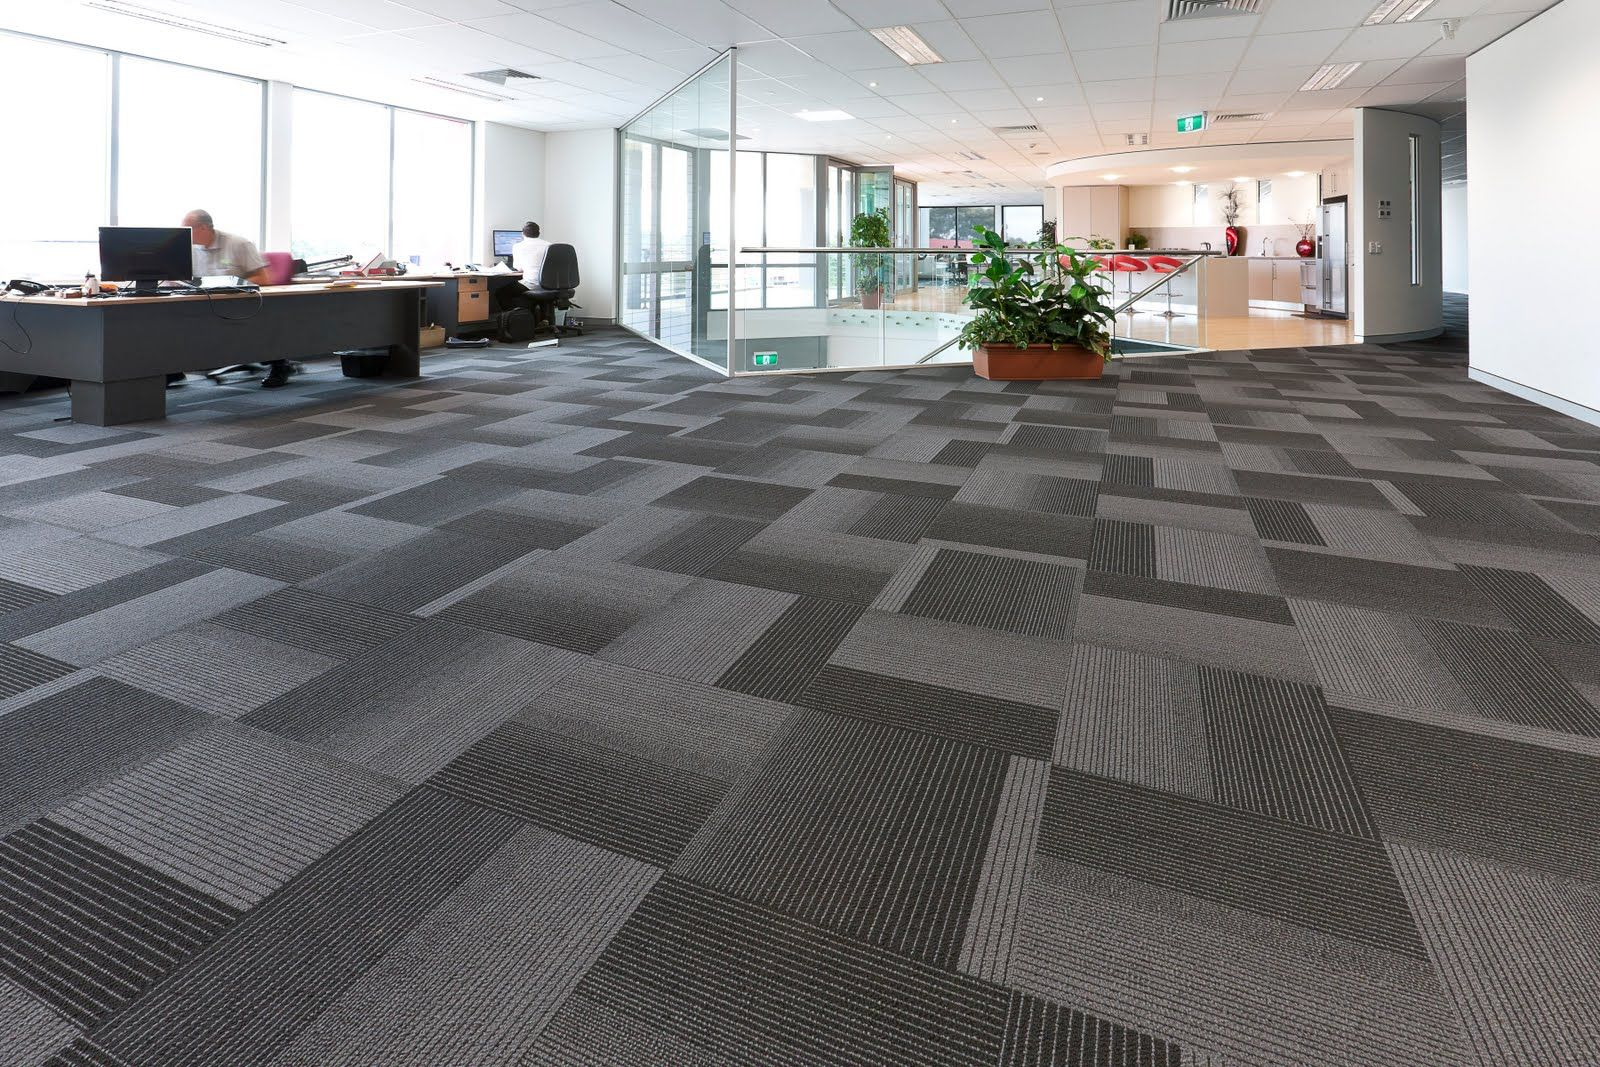 Carpet Solutions Carpet Design Ideas Wide Office Space With Dark Grey And Silver Wall To Wall Carpet Design Csam Carpet Tiles Office Carpet Carpet Tiles Office